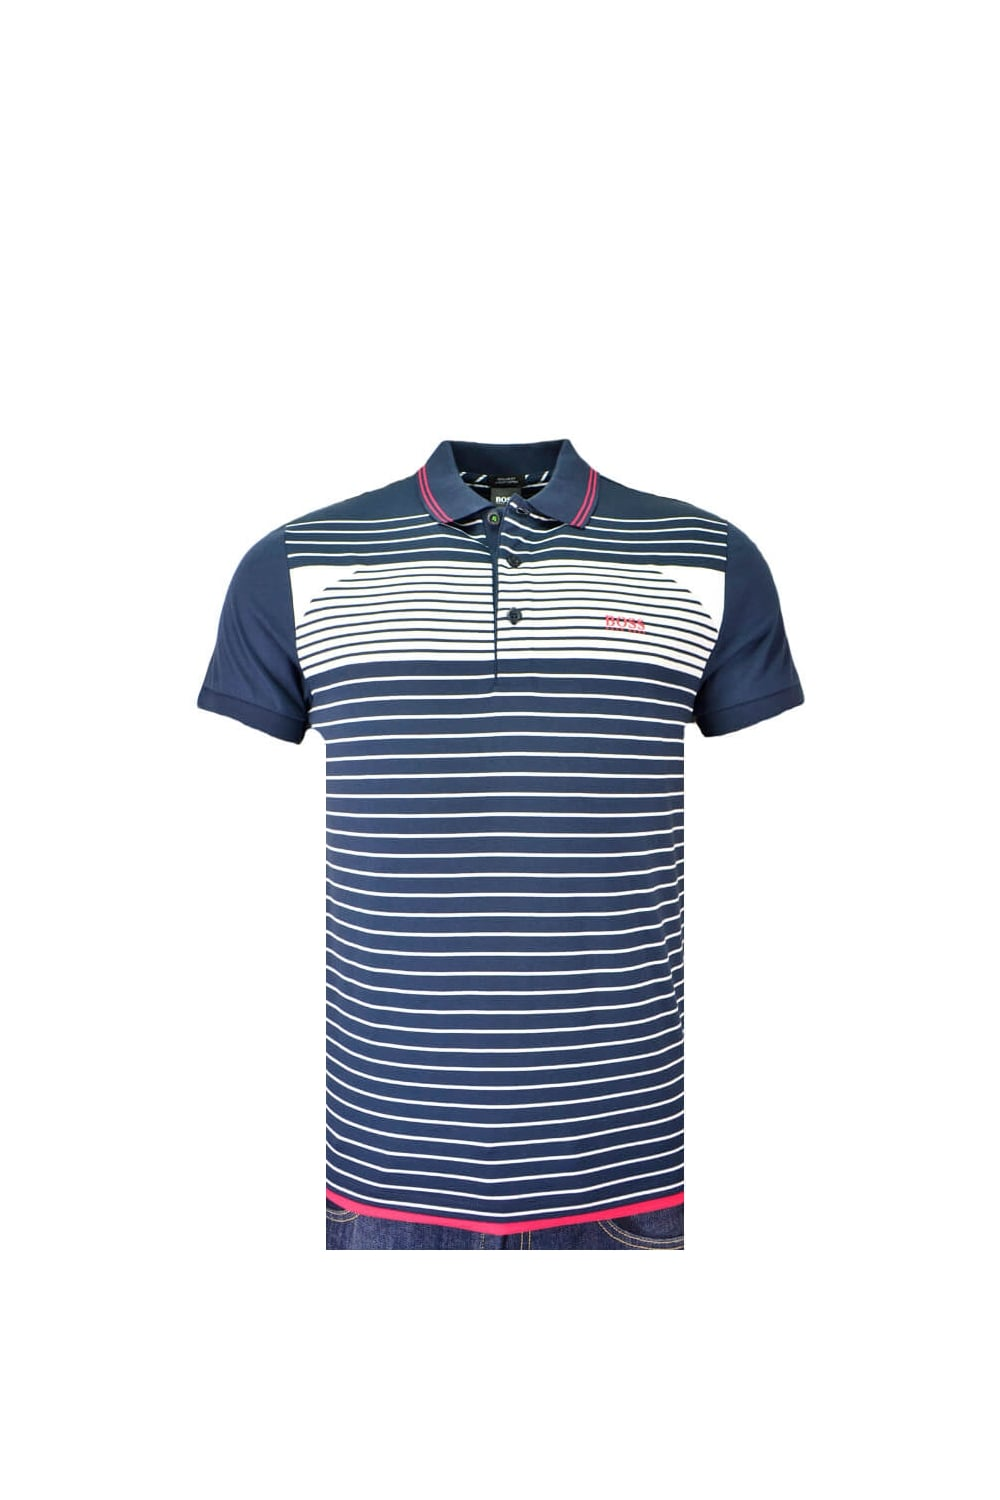 54c9d7c6e Hugo Boss Green Paddy 5 Polo Shirt Navy/White Stripe - Clothing from ...